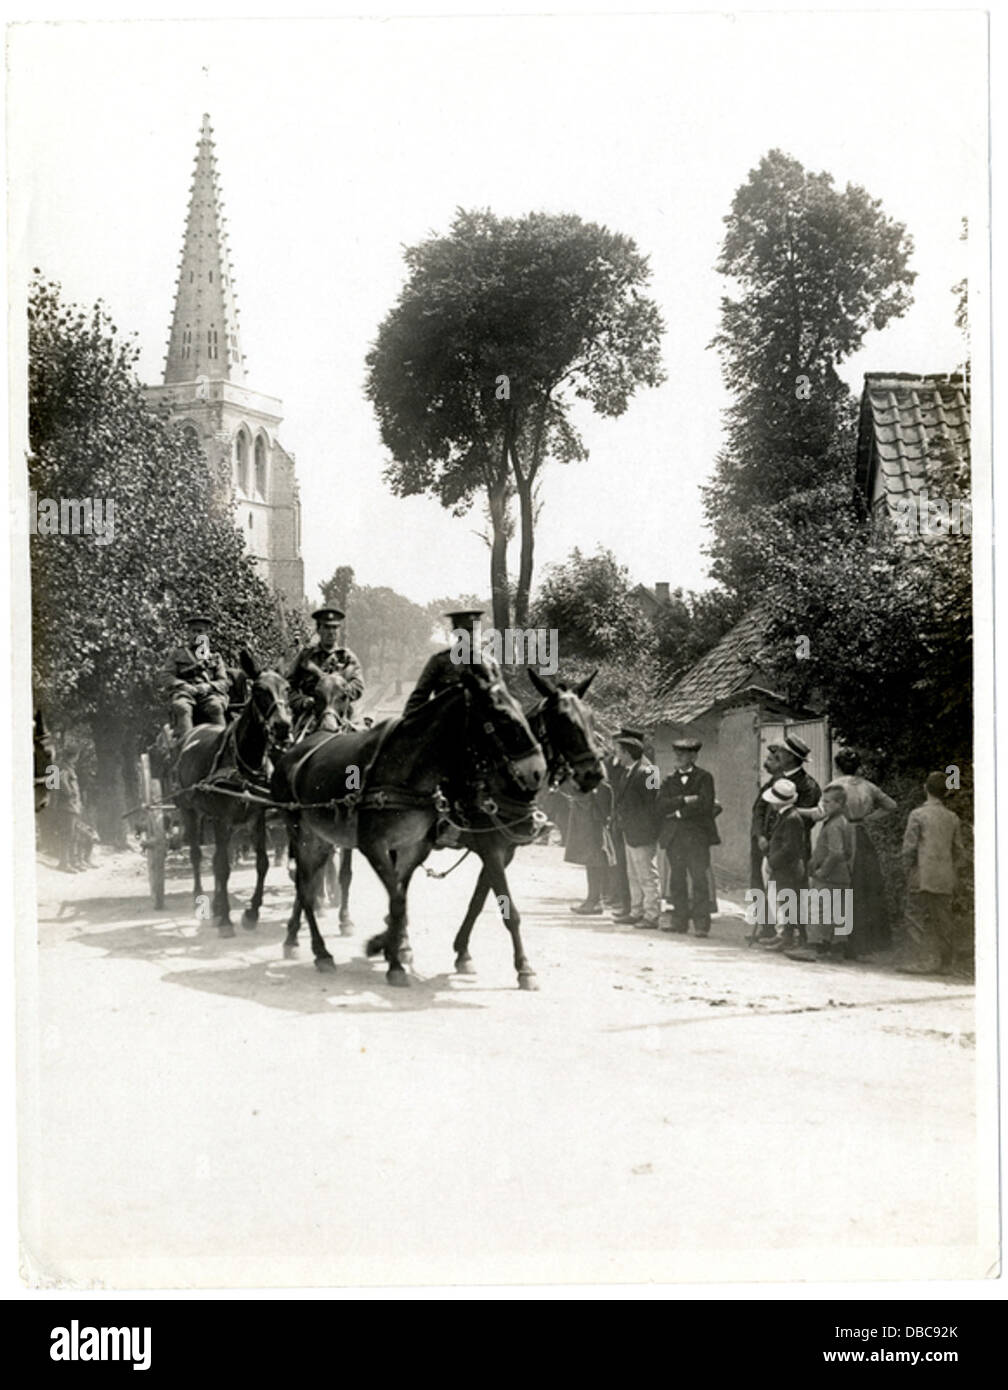 Indian cavalry and transport passing through a French town Estr C3 A9e Blanche (Photo 24-119) - Stock Image